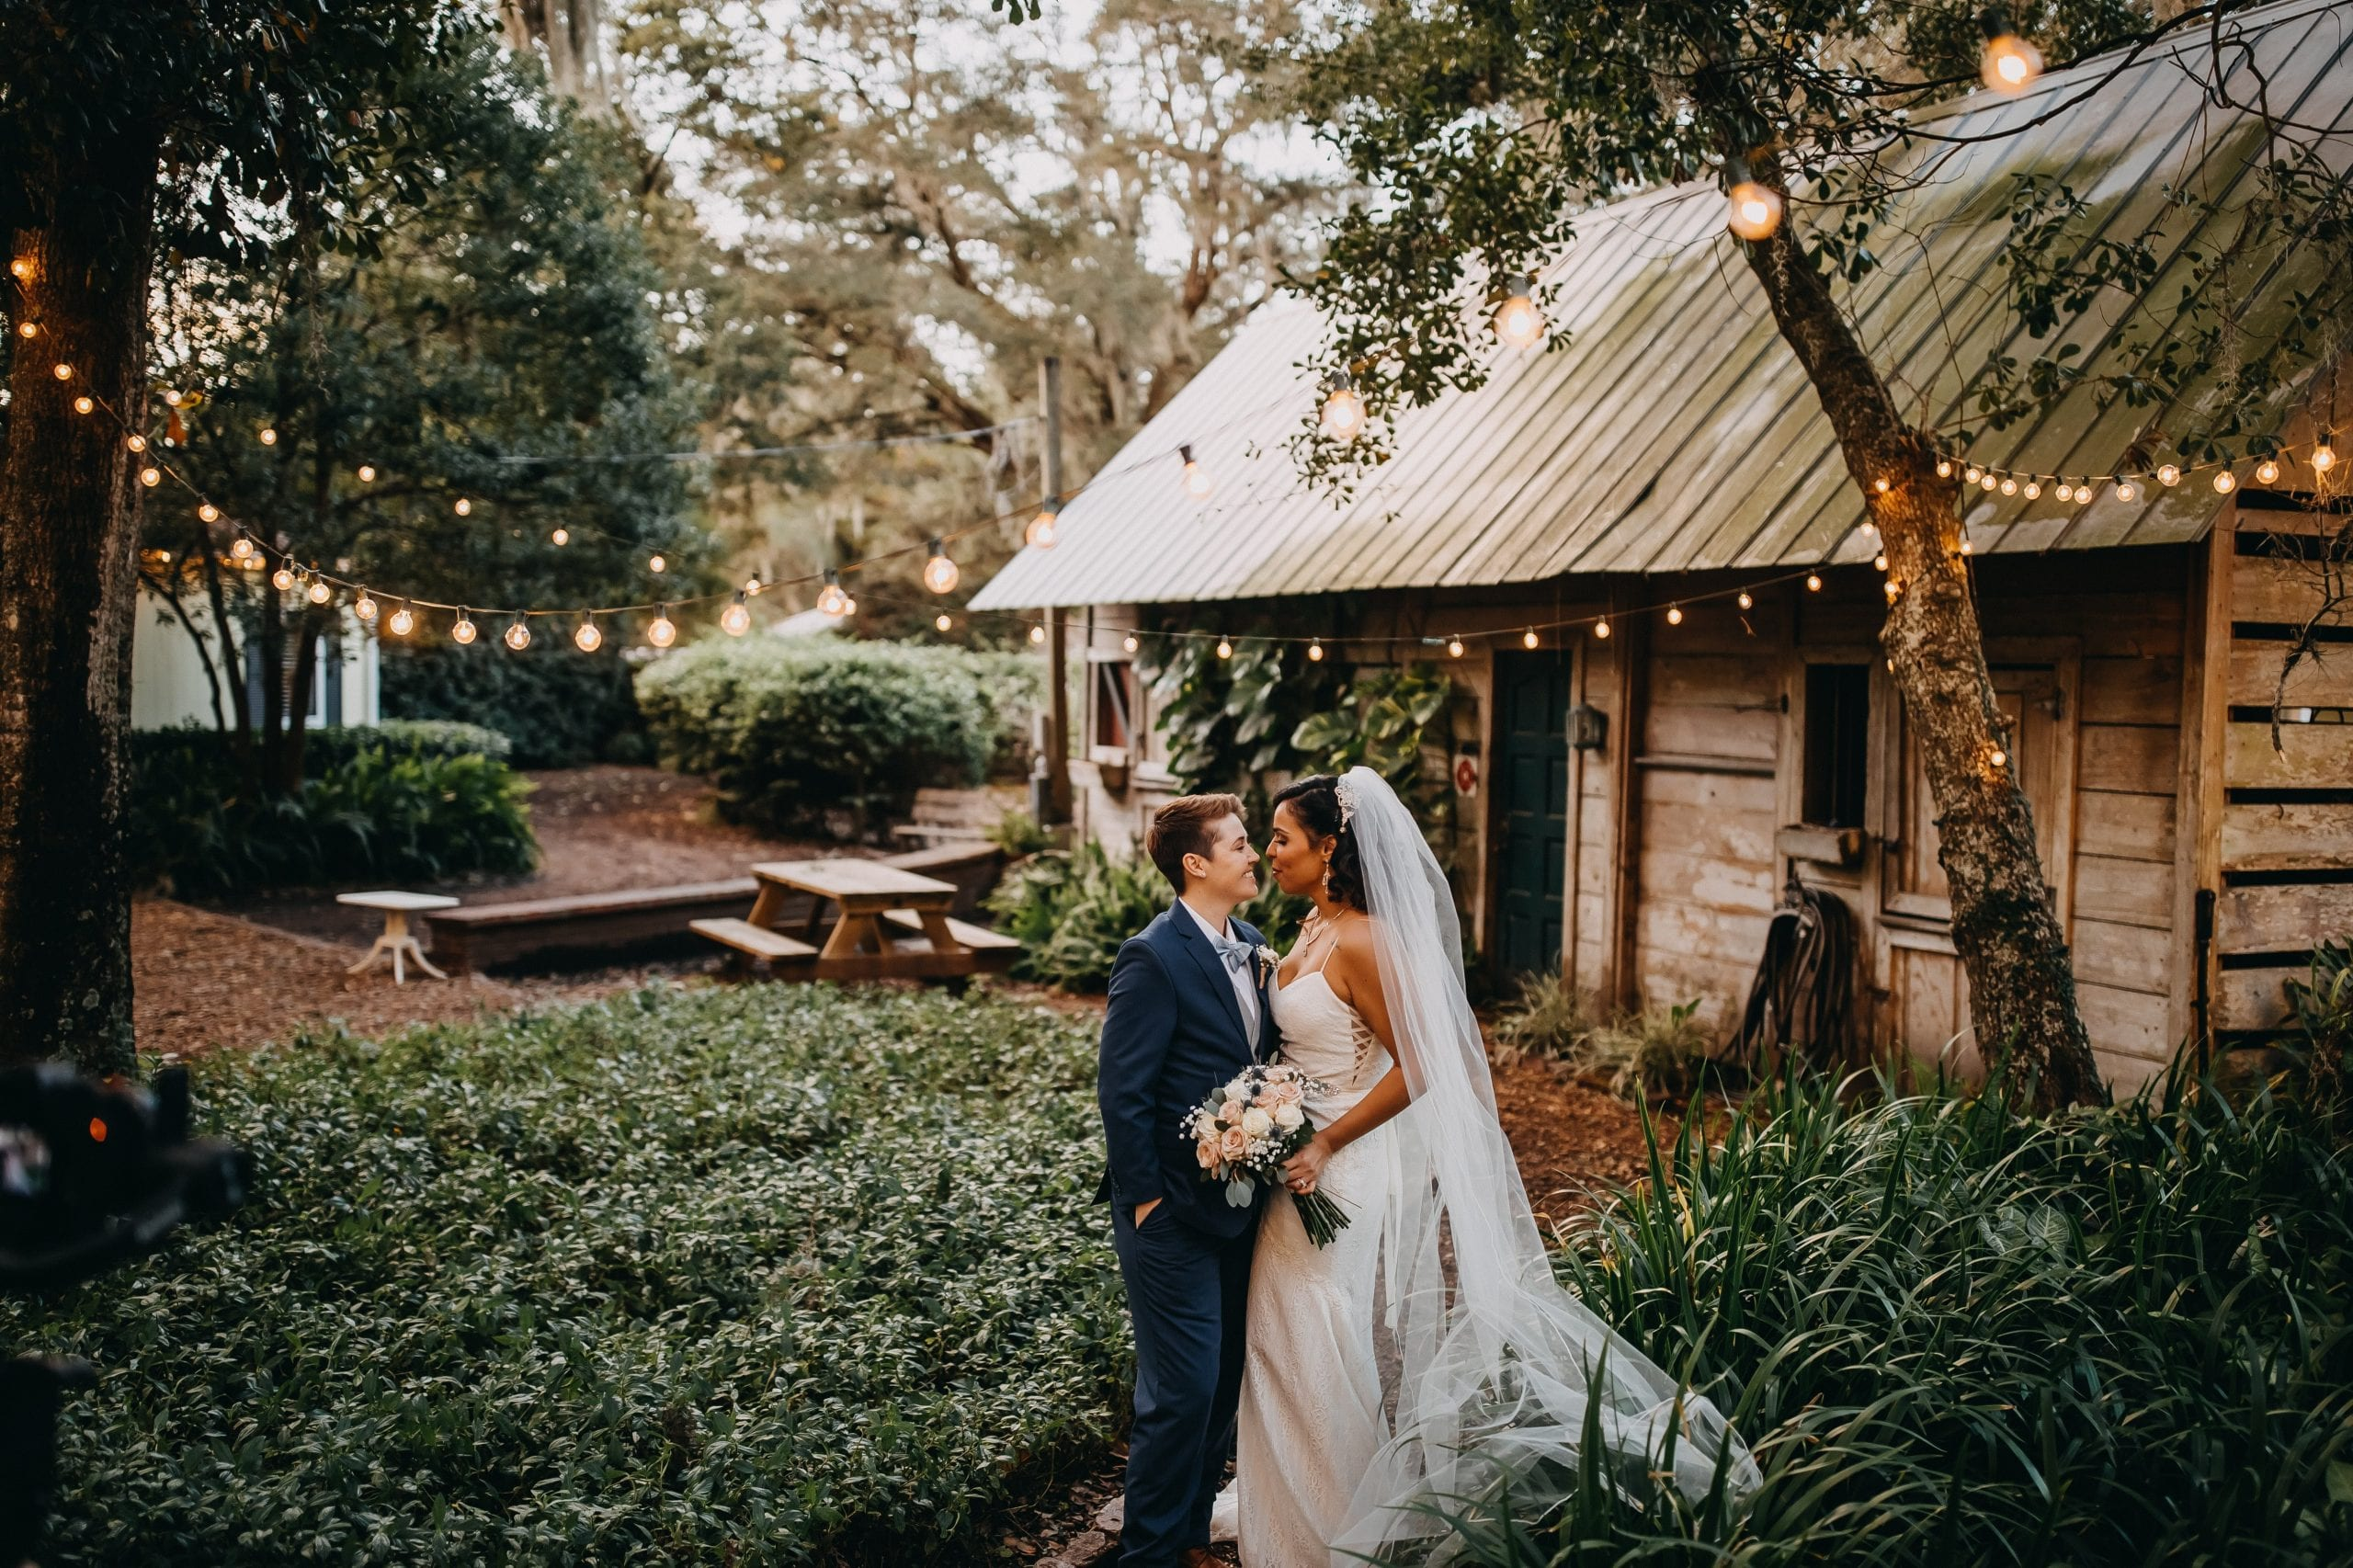 Stephanie + Sheyla's Rustic Greenery Filled Wedding